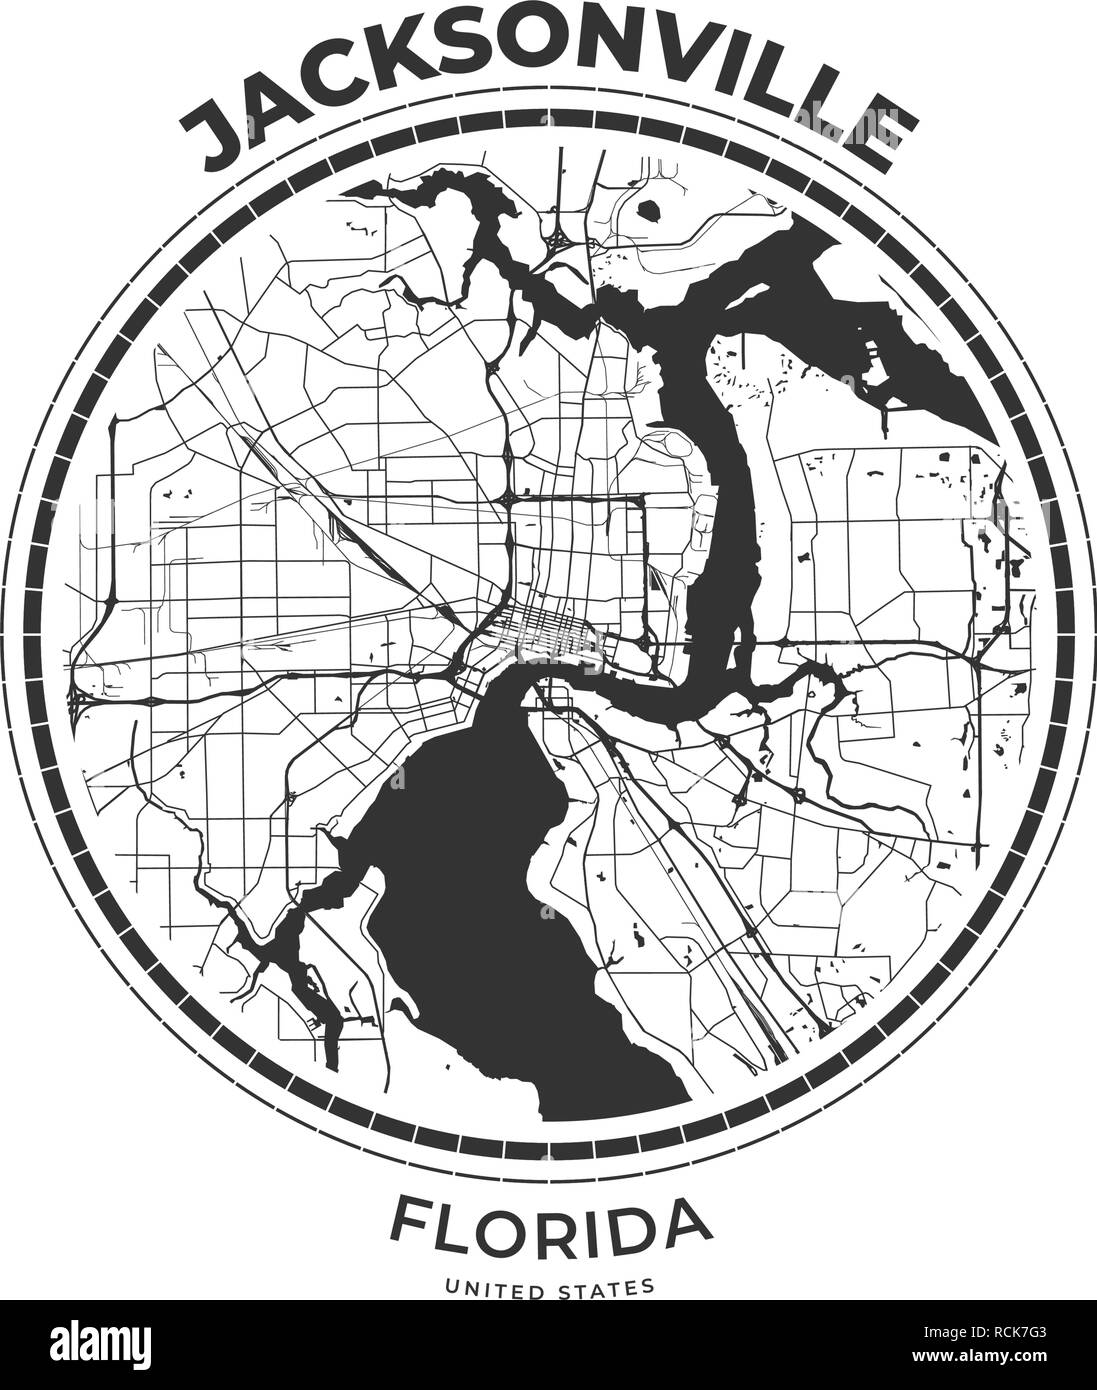 photograph regarding Printable Map of Jacksonville Fl referred to as T-blouse map badge of Jacksonville, Florida. Tee blouse print